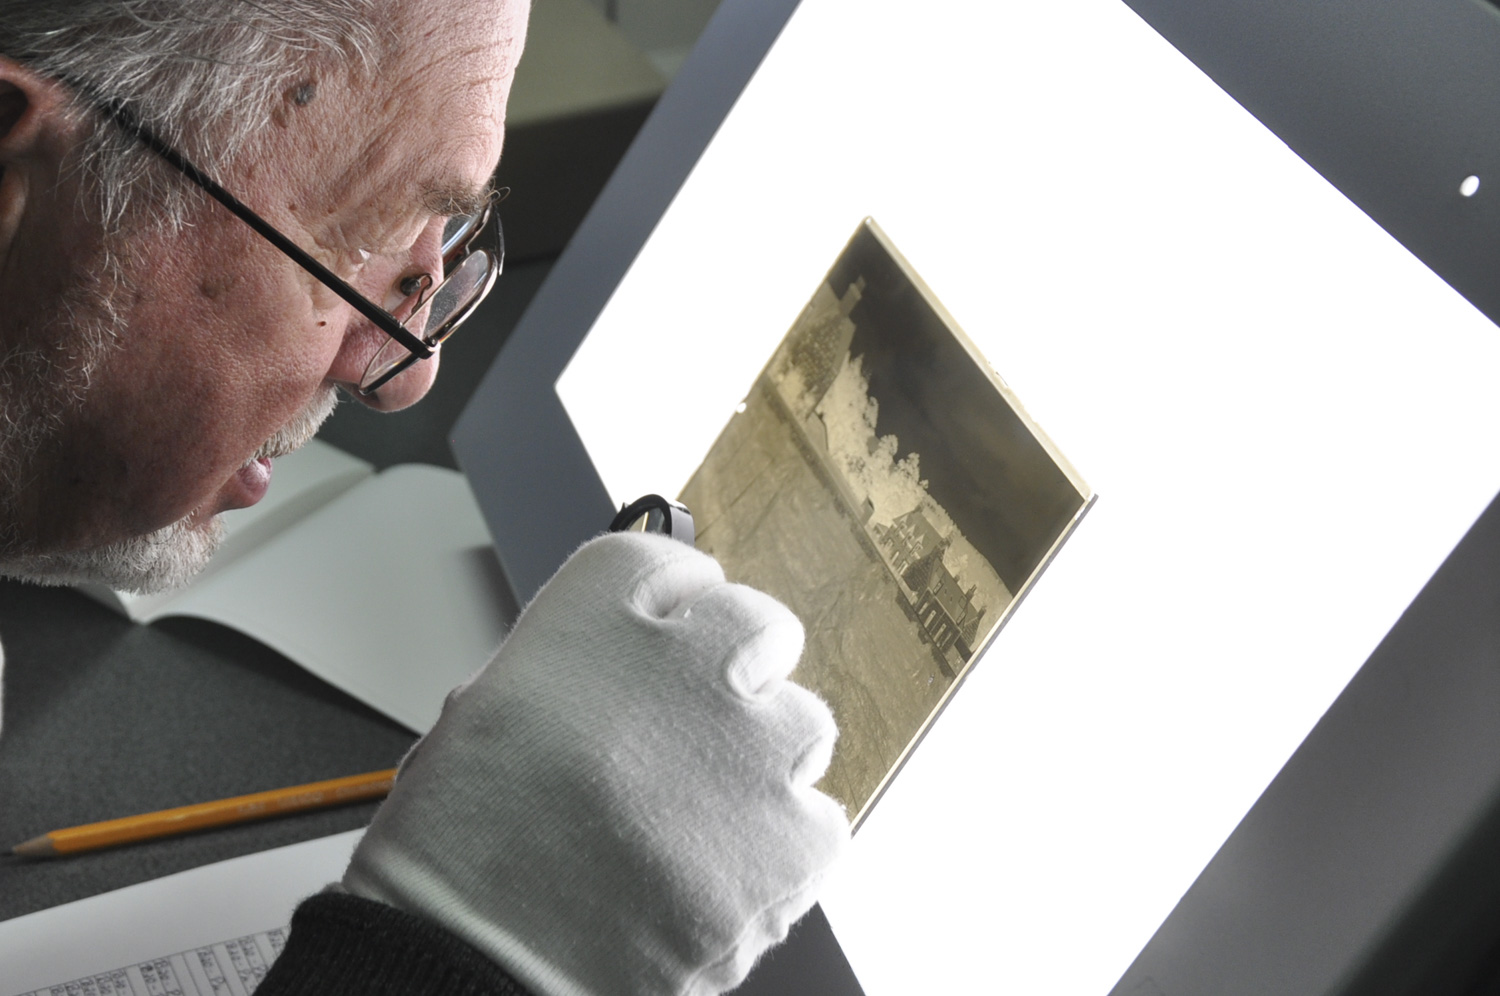 Gentleman looking closely at a glass negative on a lightbox.